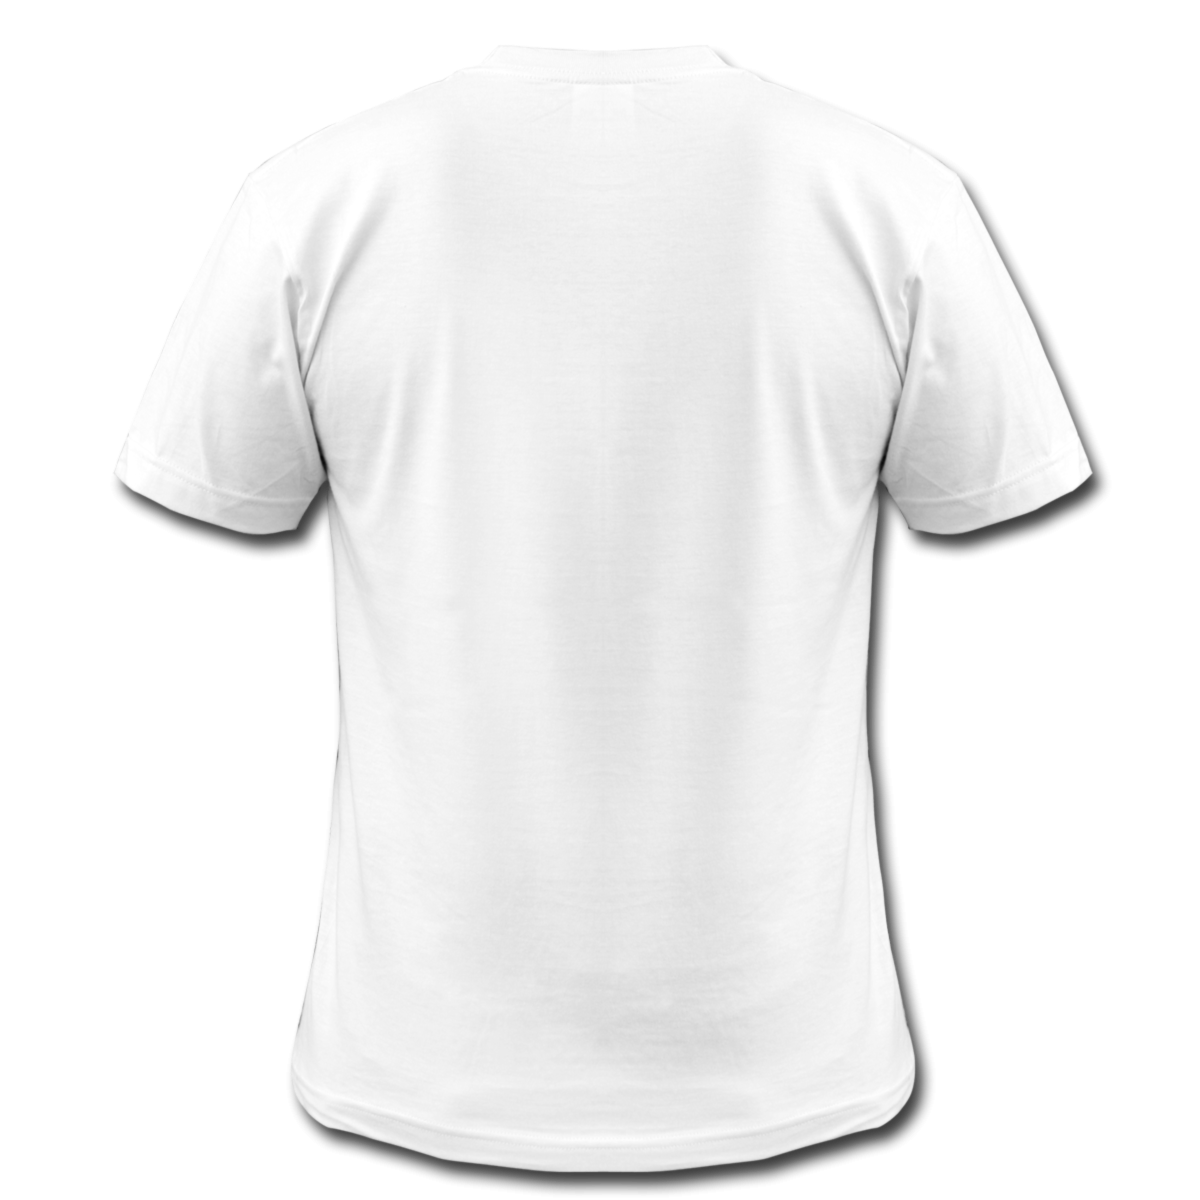 Transparent Blank White T Shirt Png - Amyhj